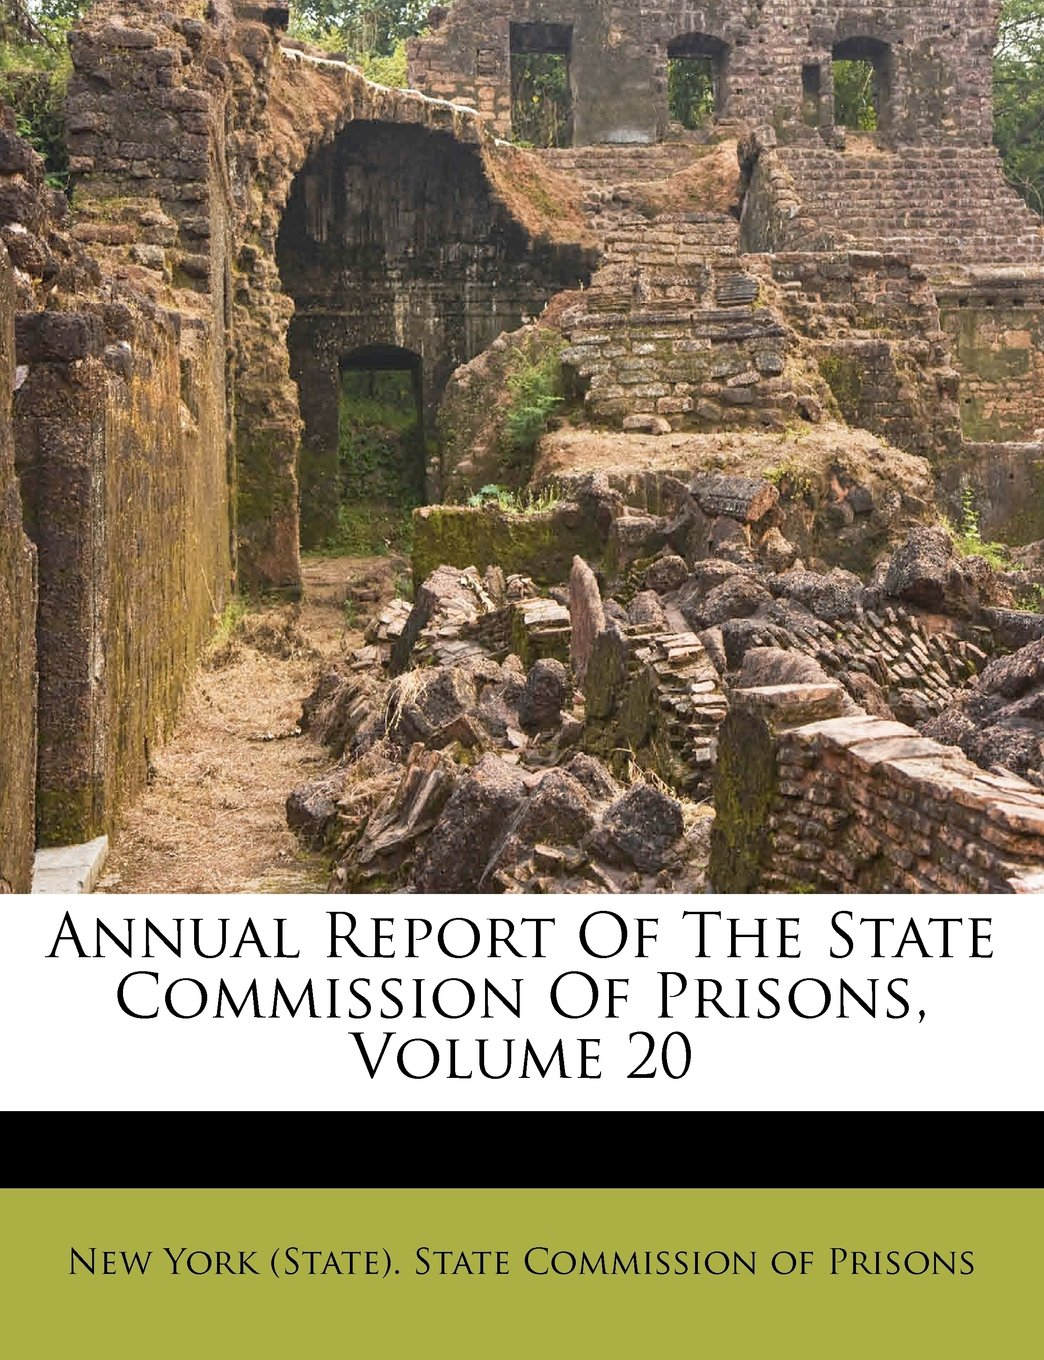 Annual Report Of The State Commission Of Prisons, Volume 20 pdf